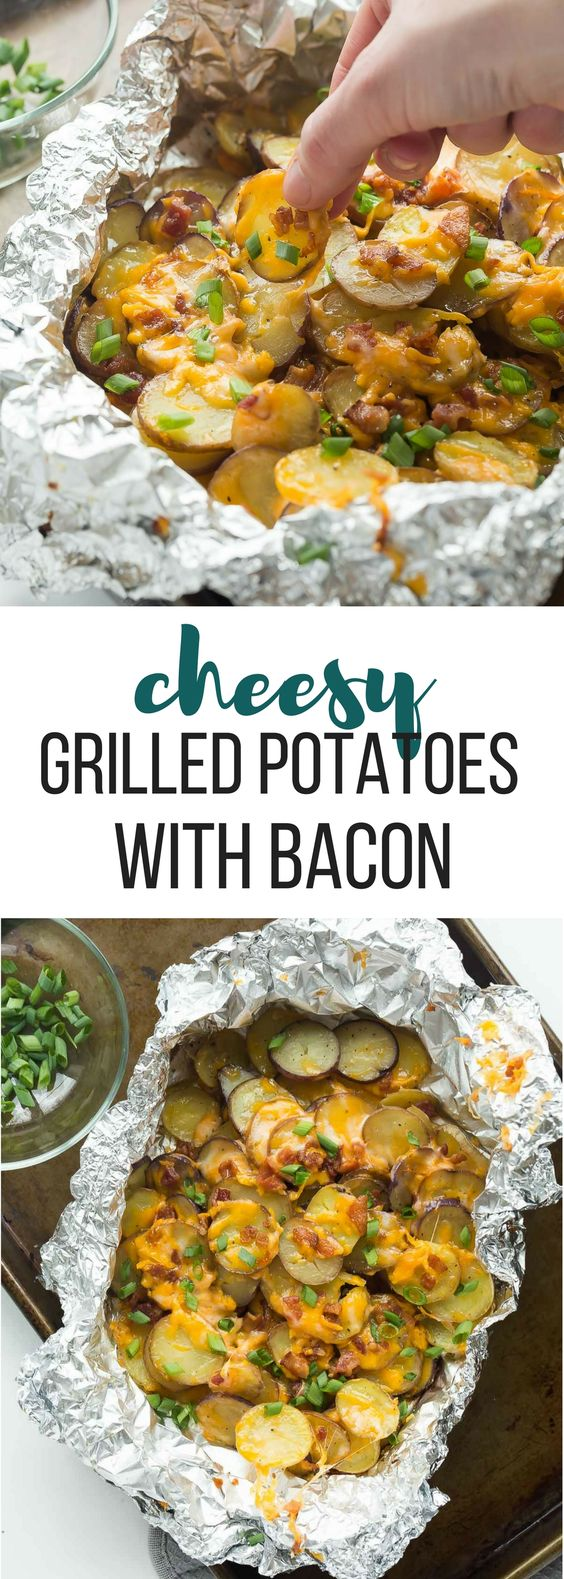 CHEESY GRILLED POTATOES WITH BACON